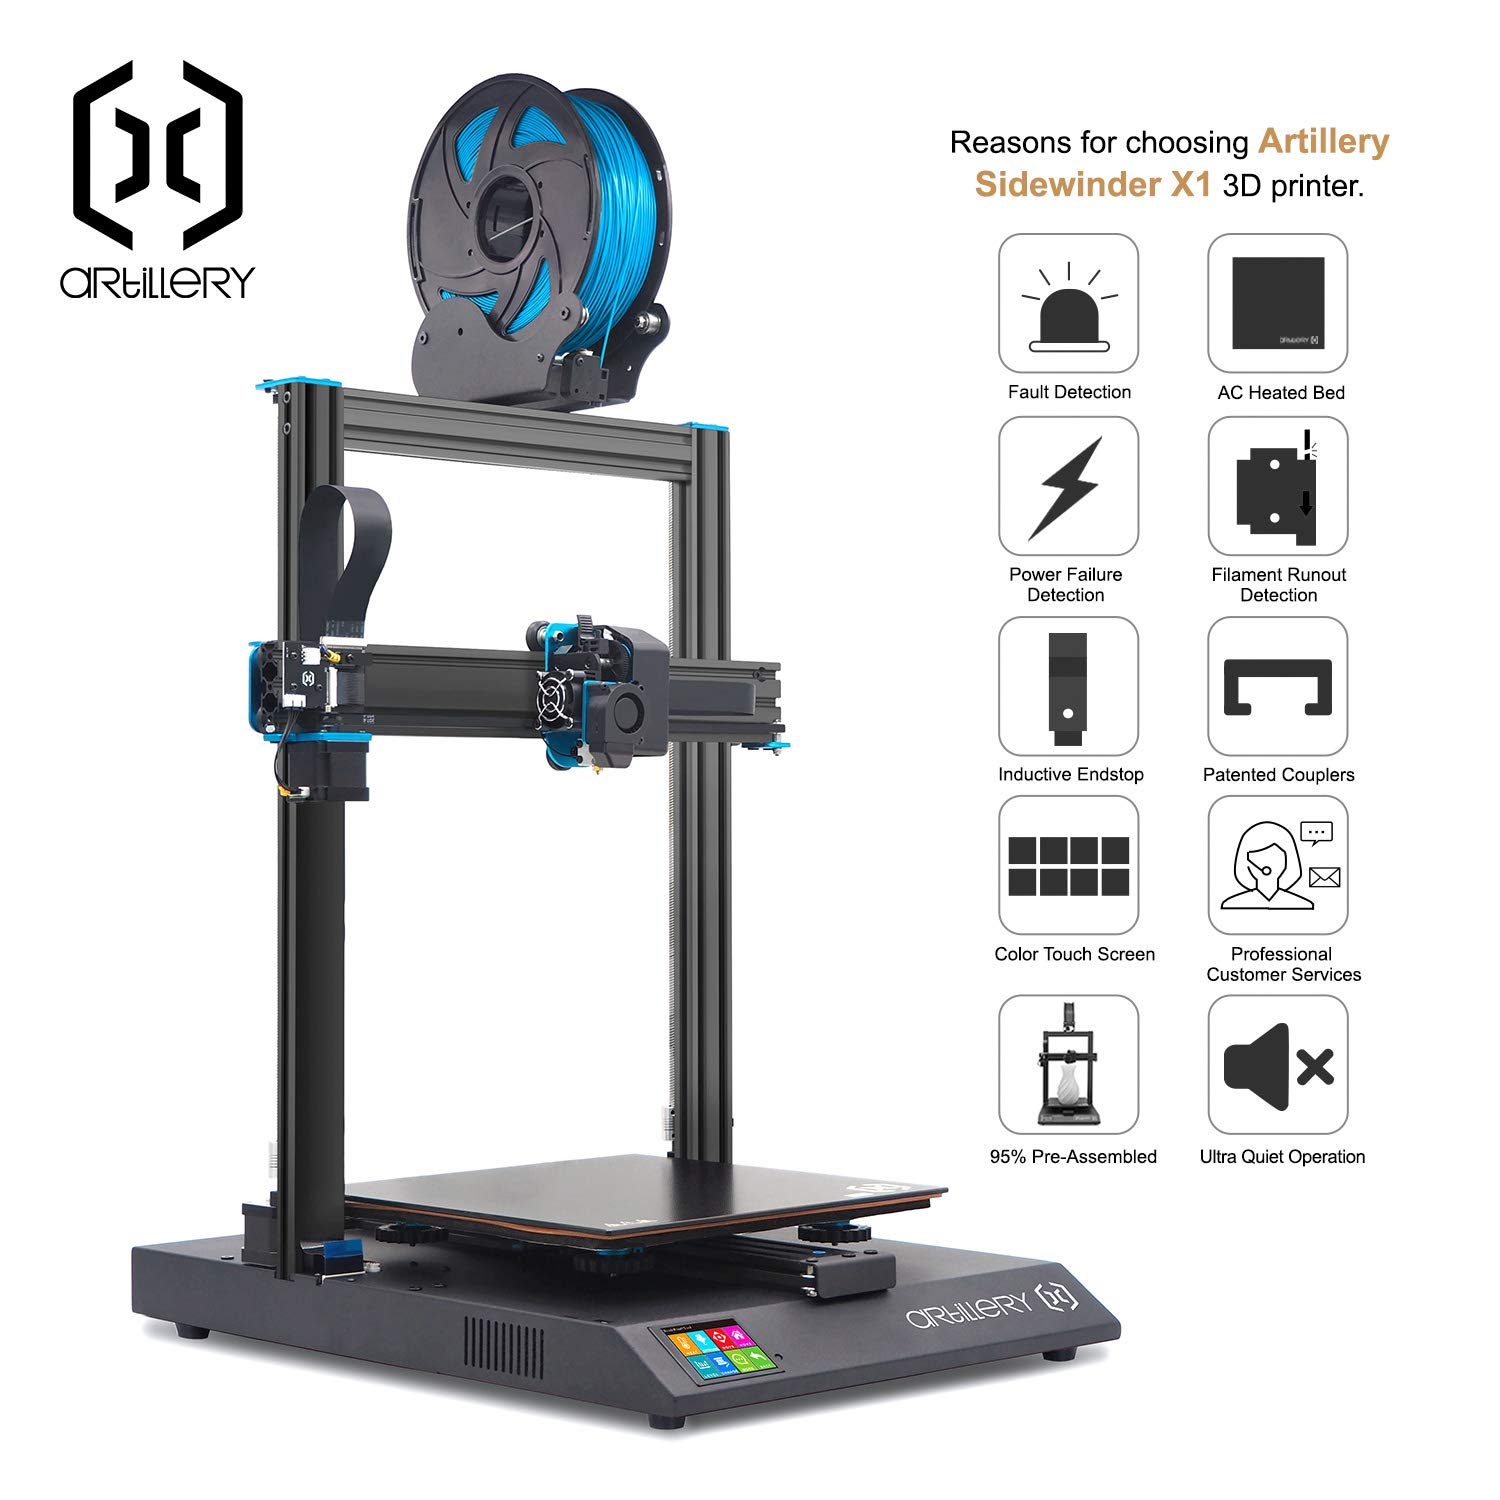 Reset Button Dual Z Axis Ultra-Quiet Printing 0.6mm Direct Drive Extruder Filament Runout Detection /& Recovery Artillery Sidewinder X1 3D Printer V4 Newest Model 95/% Pre-Assembled 300x300x400mm